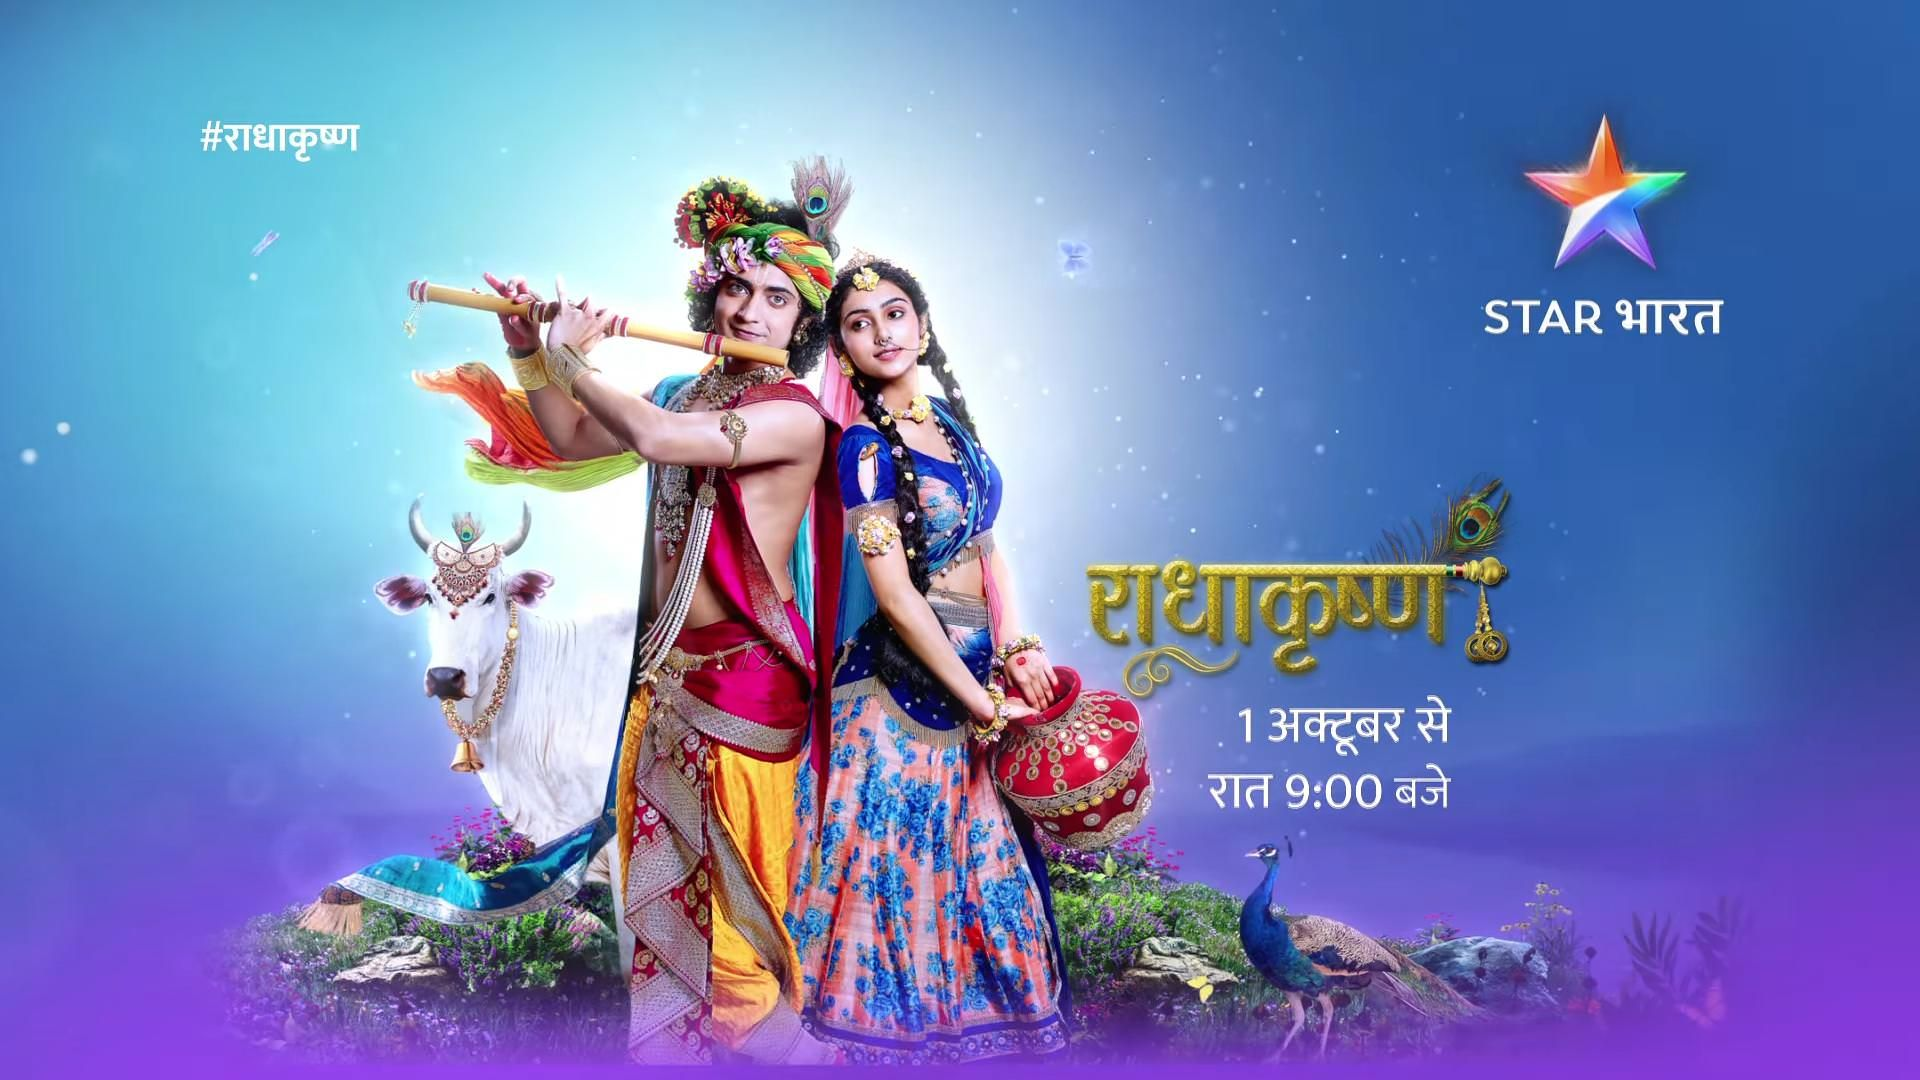 Radha Krishna Star Bharat Serial Hd Images Radha Krishna Photo